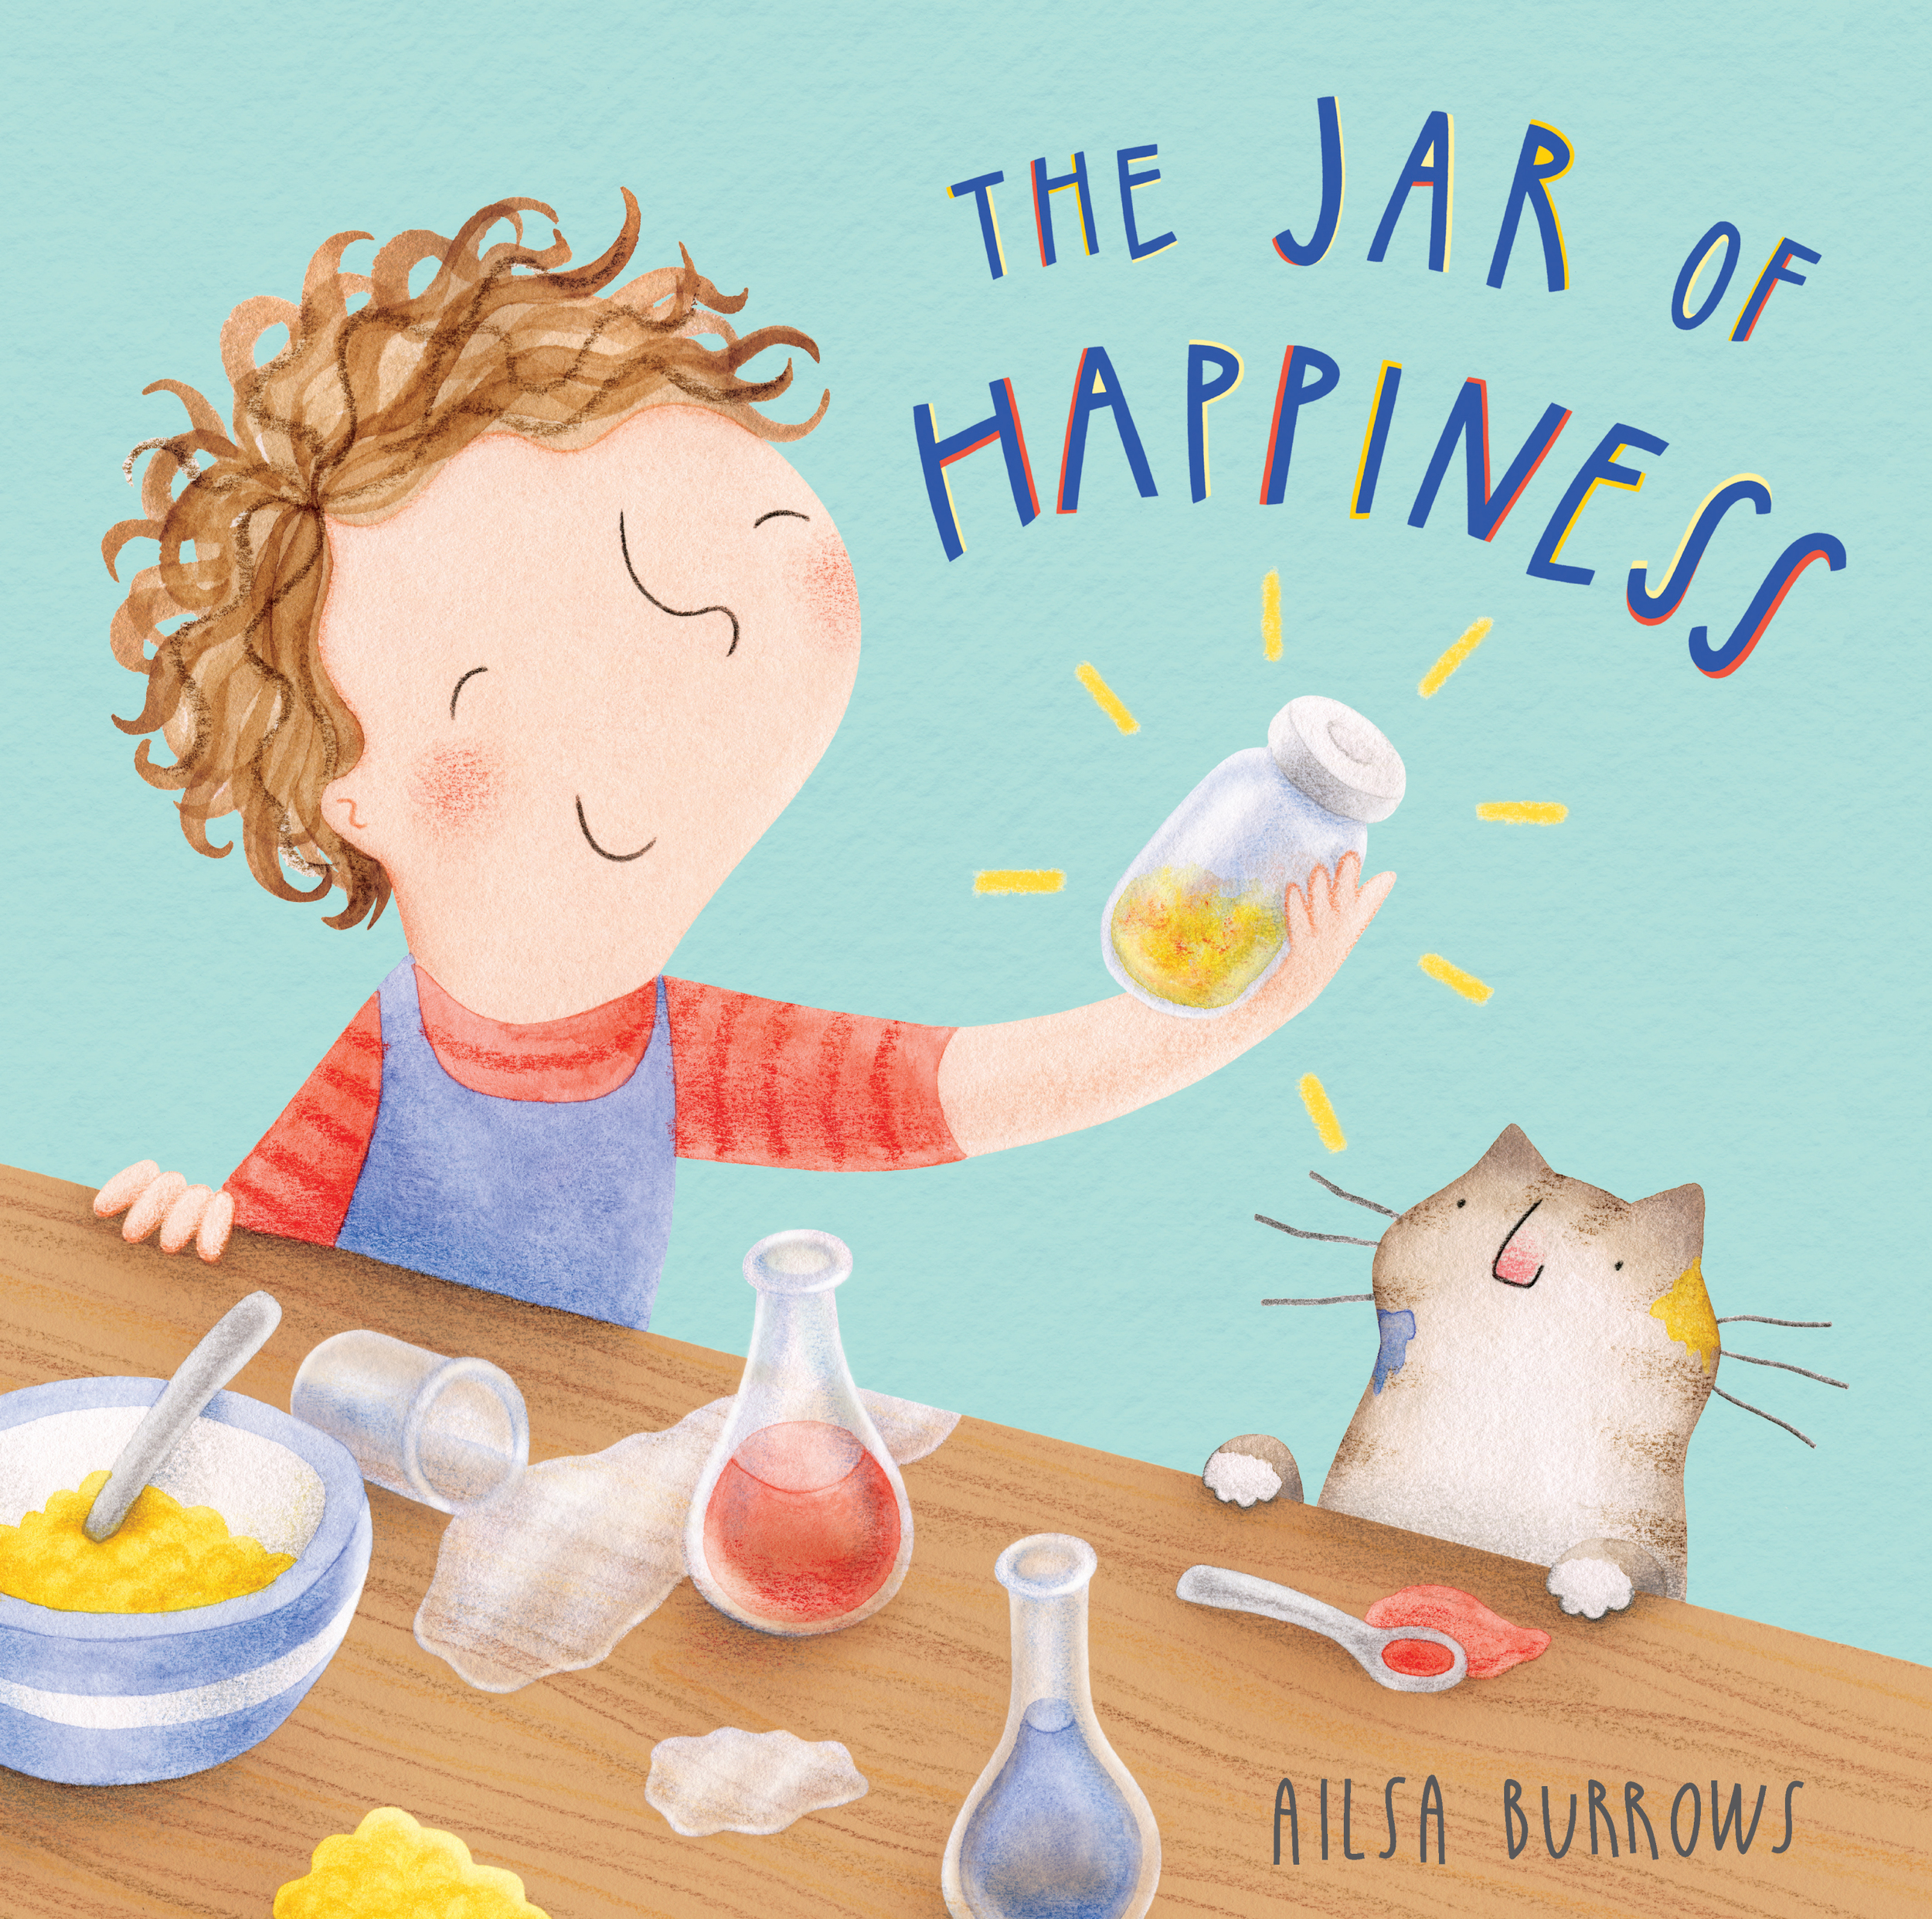 The_Jar_Of_Happiness_Picturebook_Ailsa_Burrows